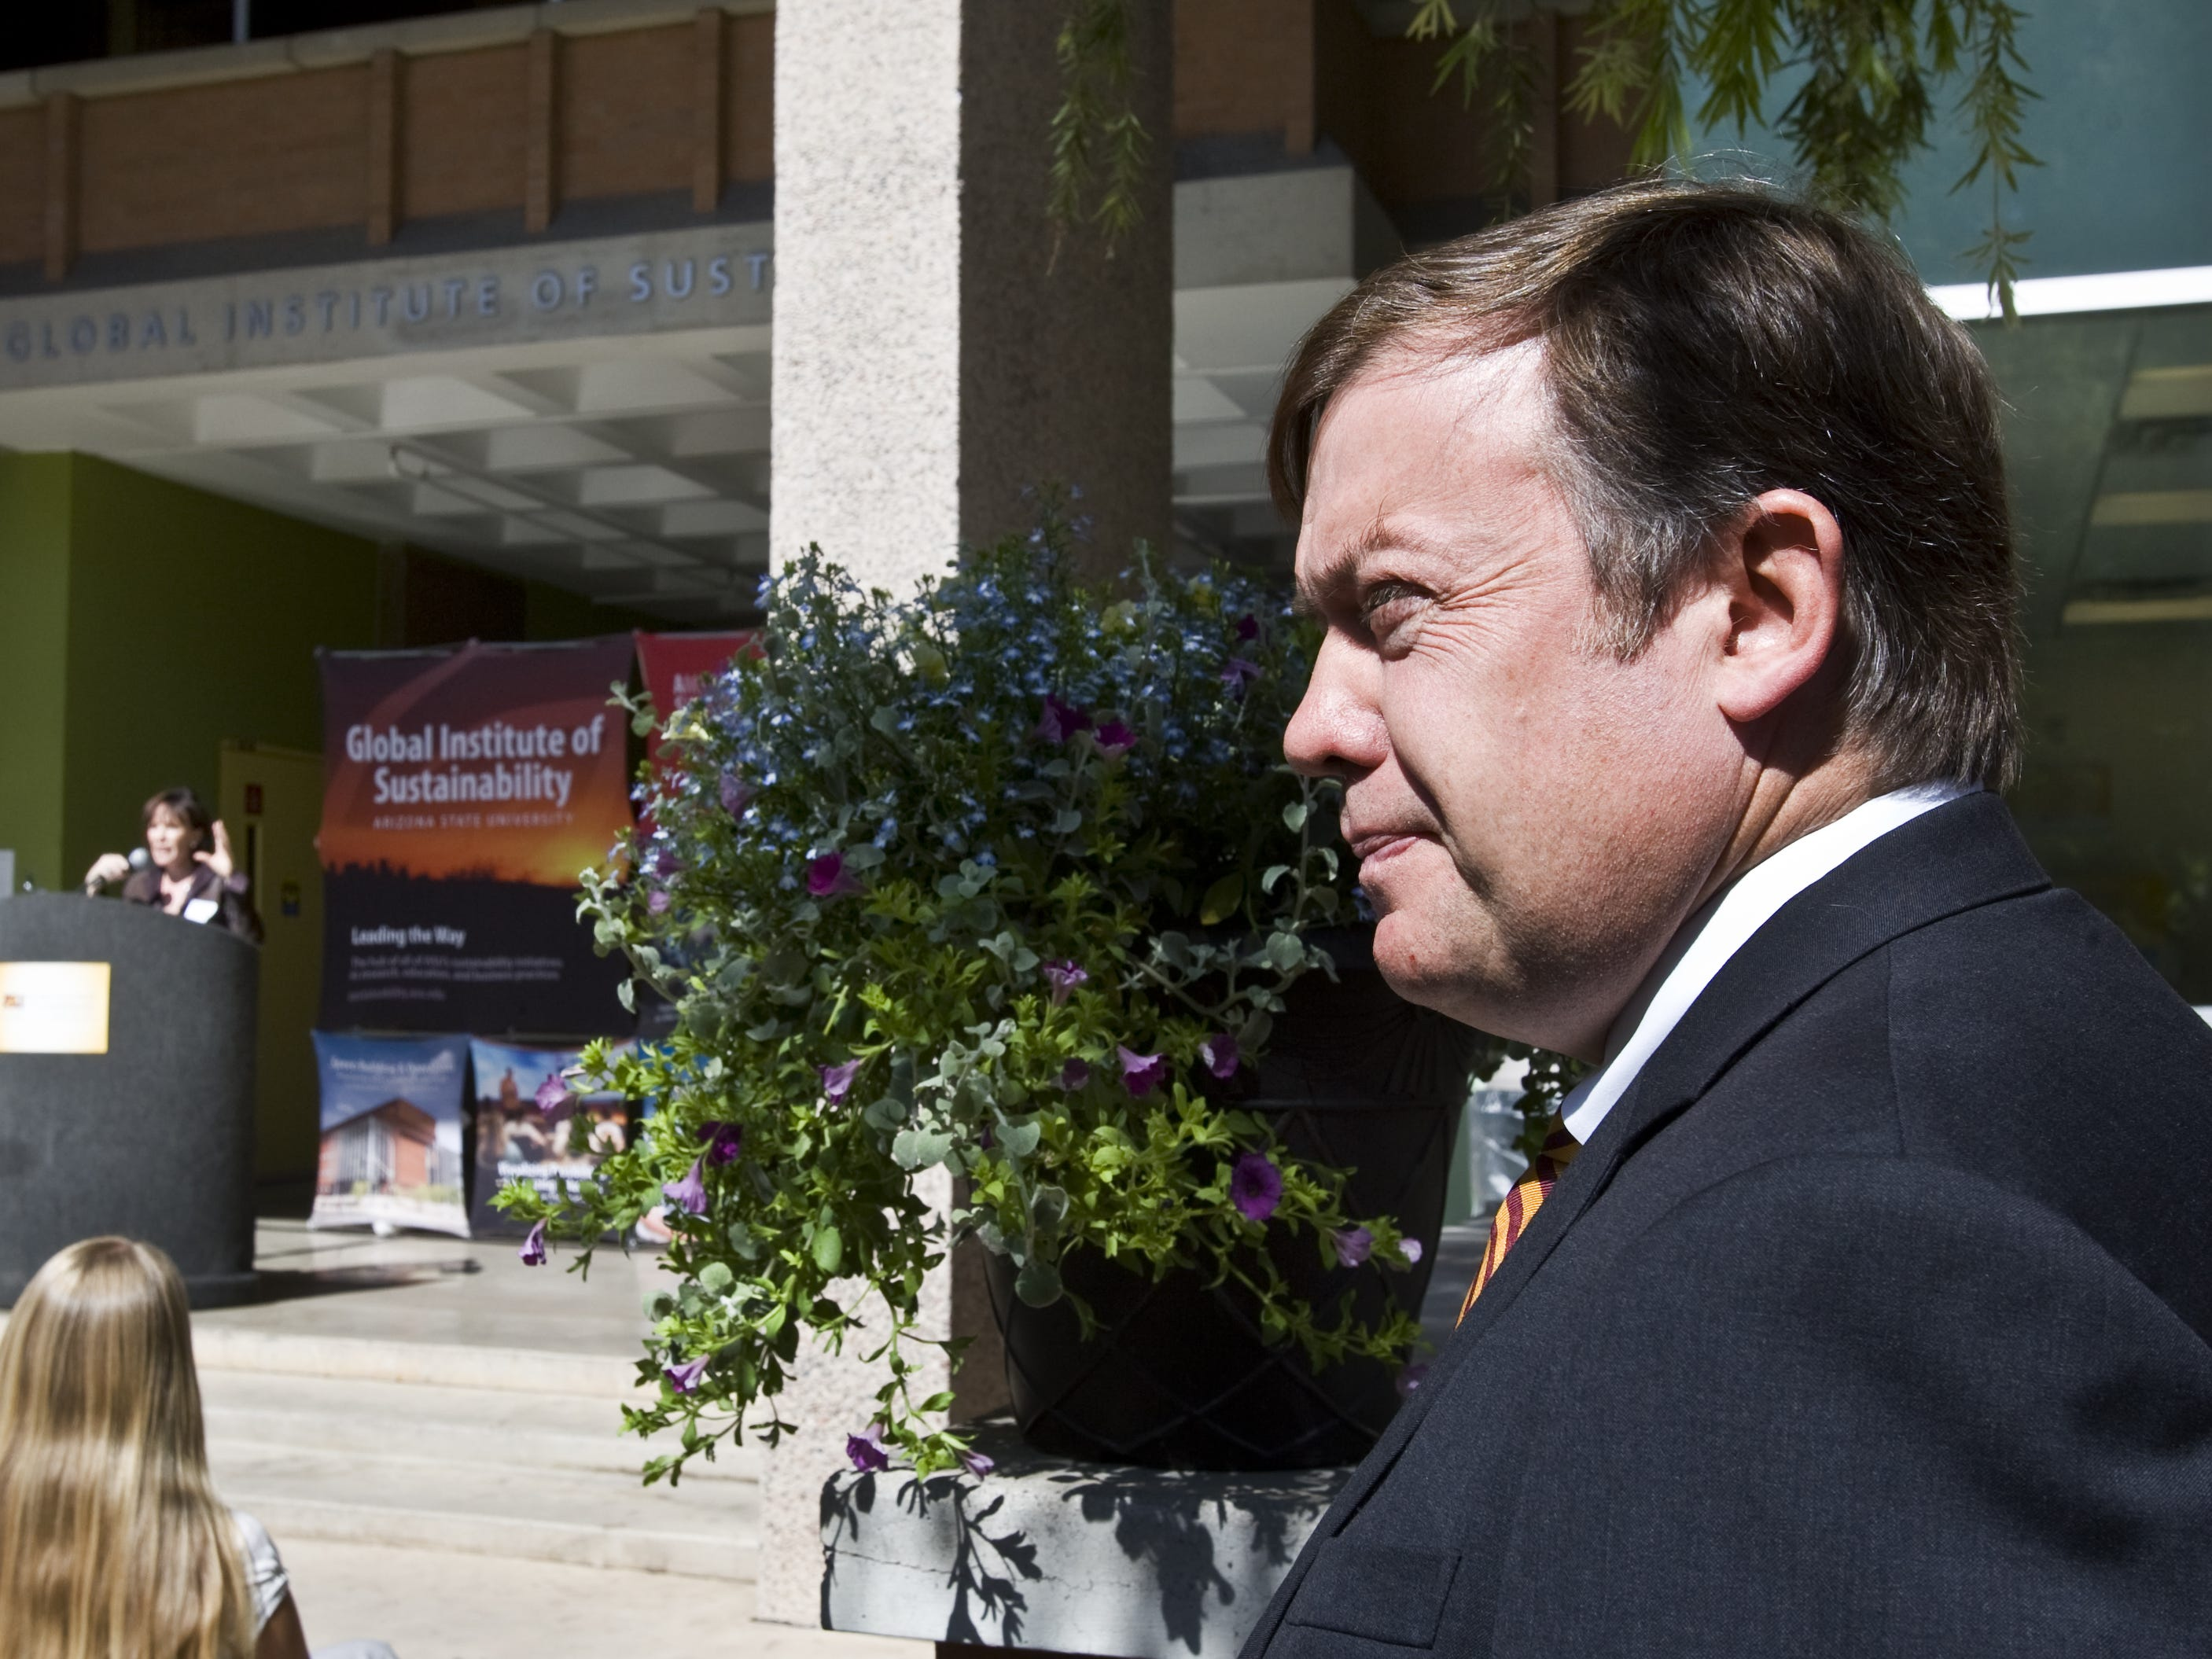 ASU President Michael Crow (right) and speaker Julie Ann Wrigley celebrate the 2008 grand opening of ASU's newly remodeled Global Institute of Sustainability, named for Wrigley.